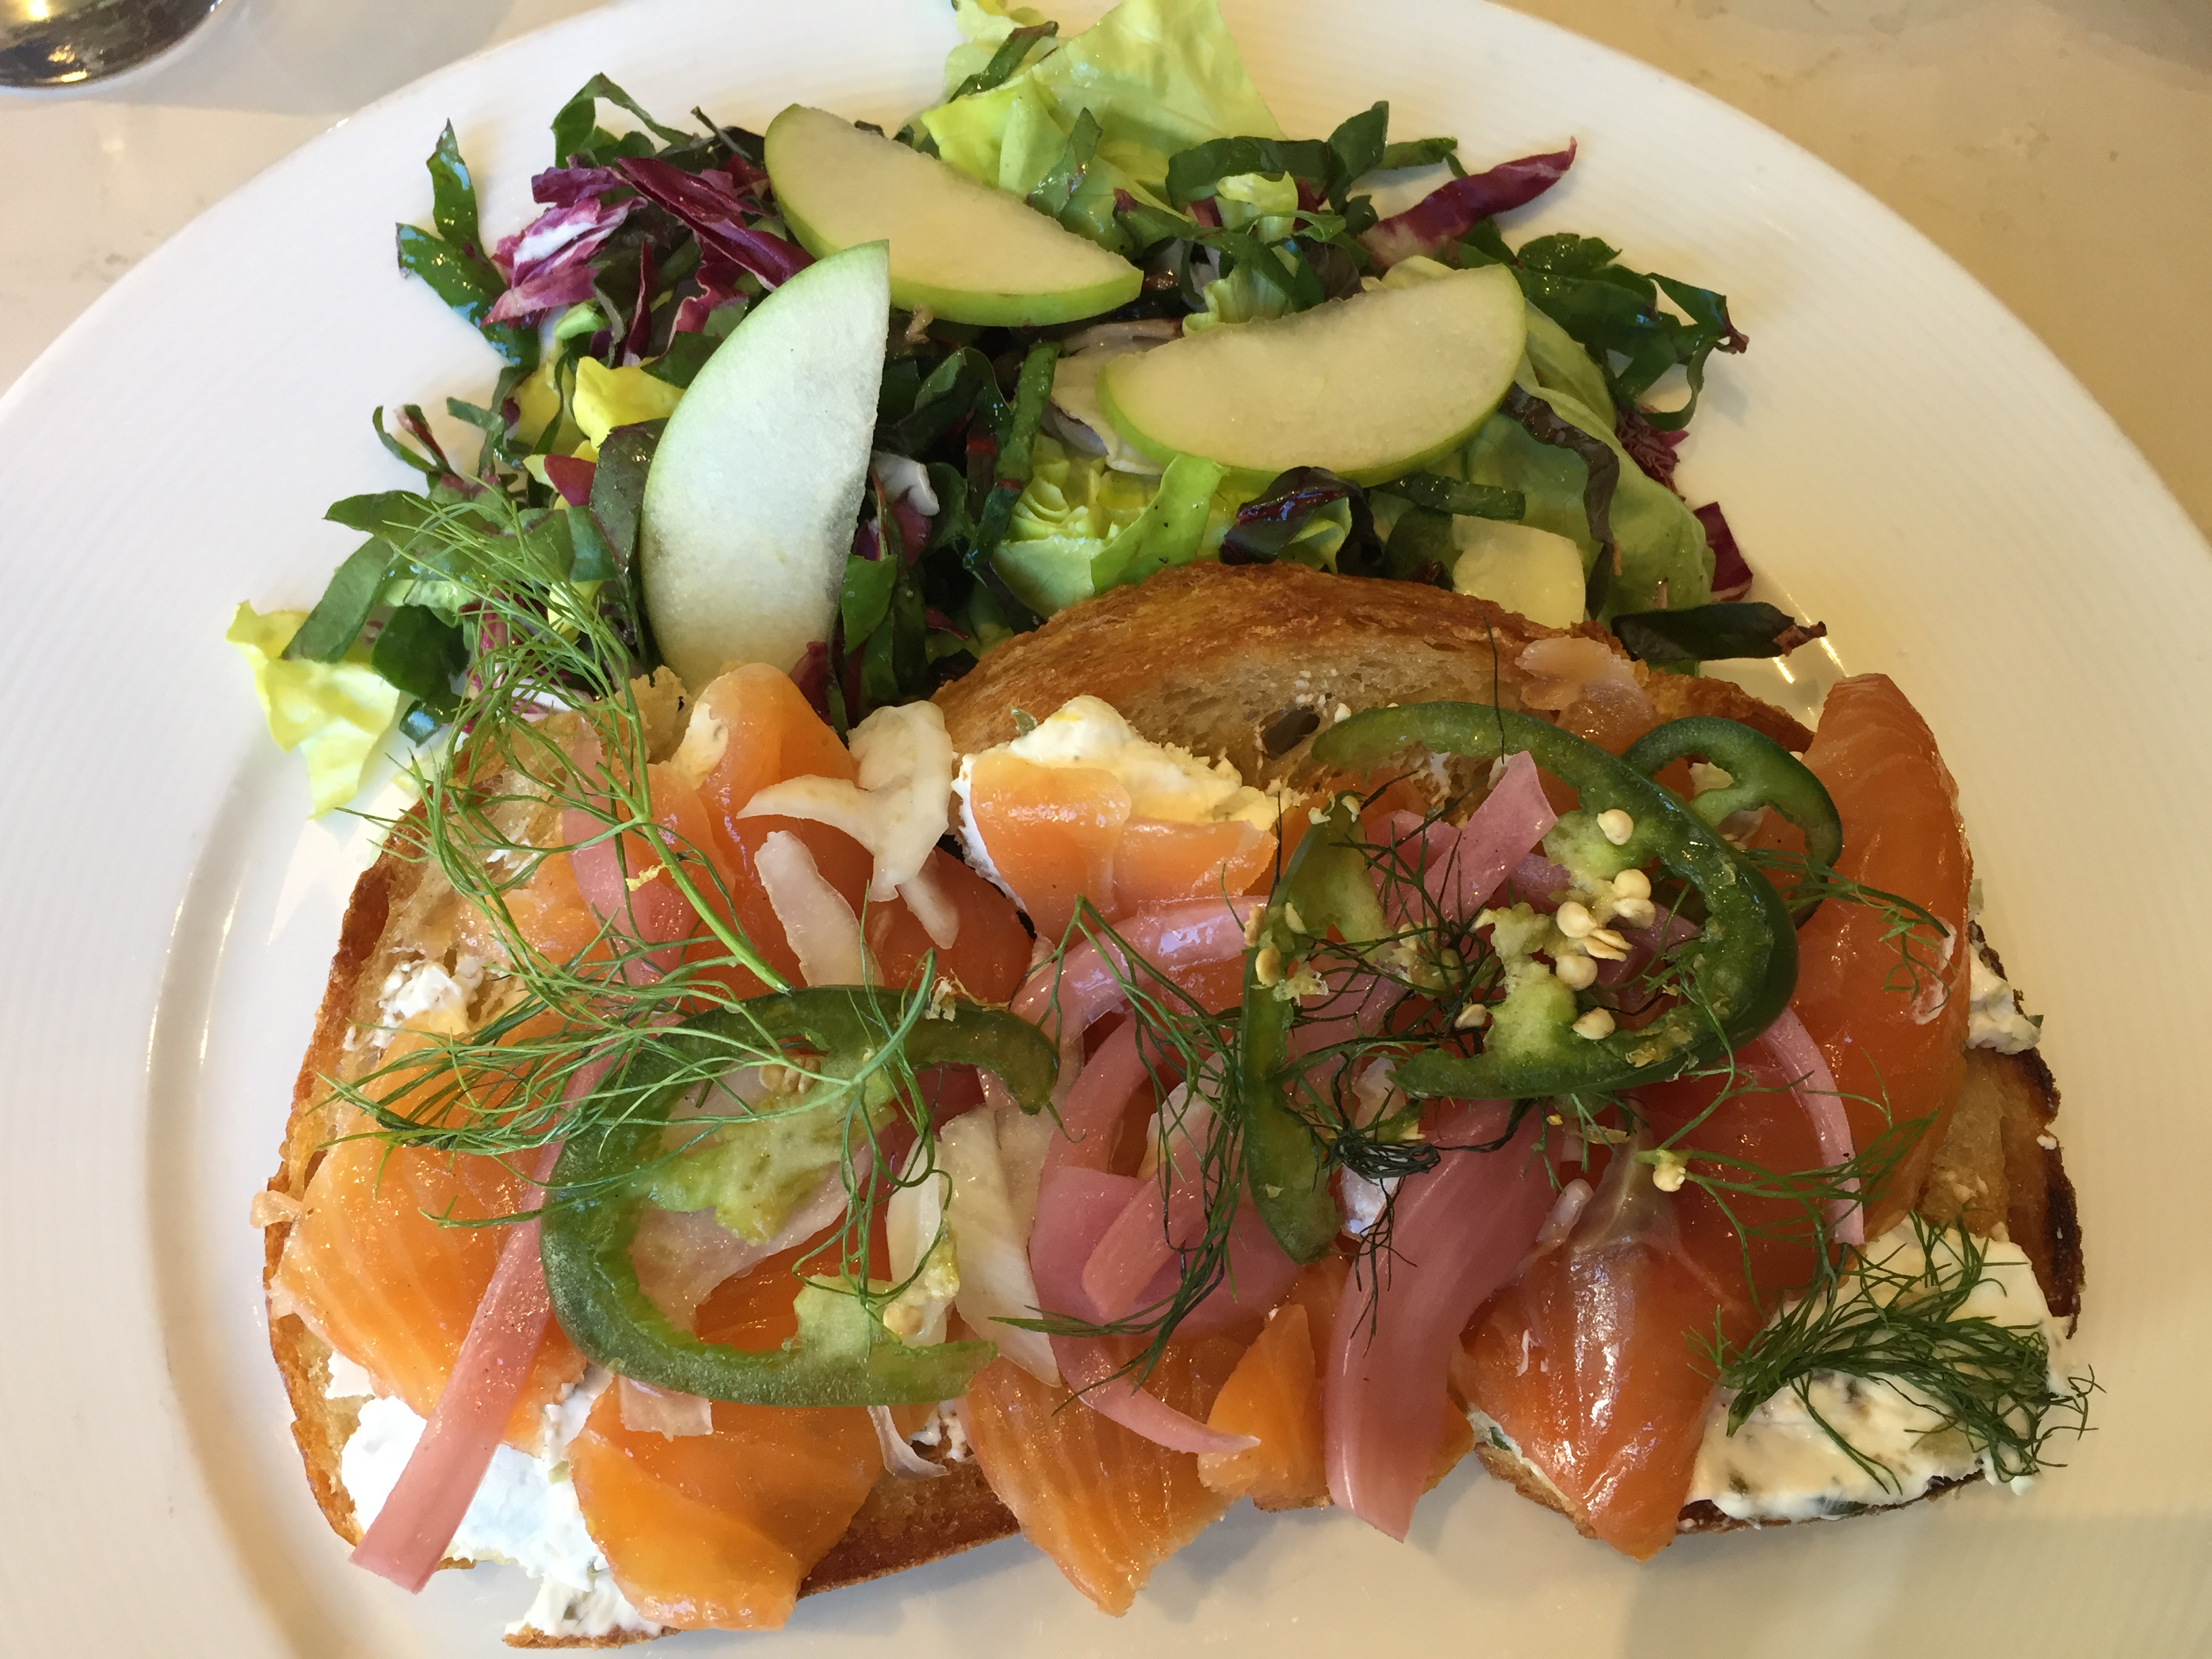 The House Cured Salmon, which is like lox and bagels but with sourdough toast